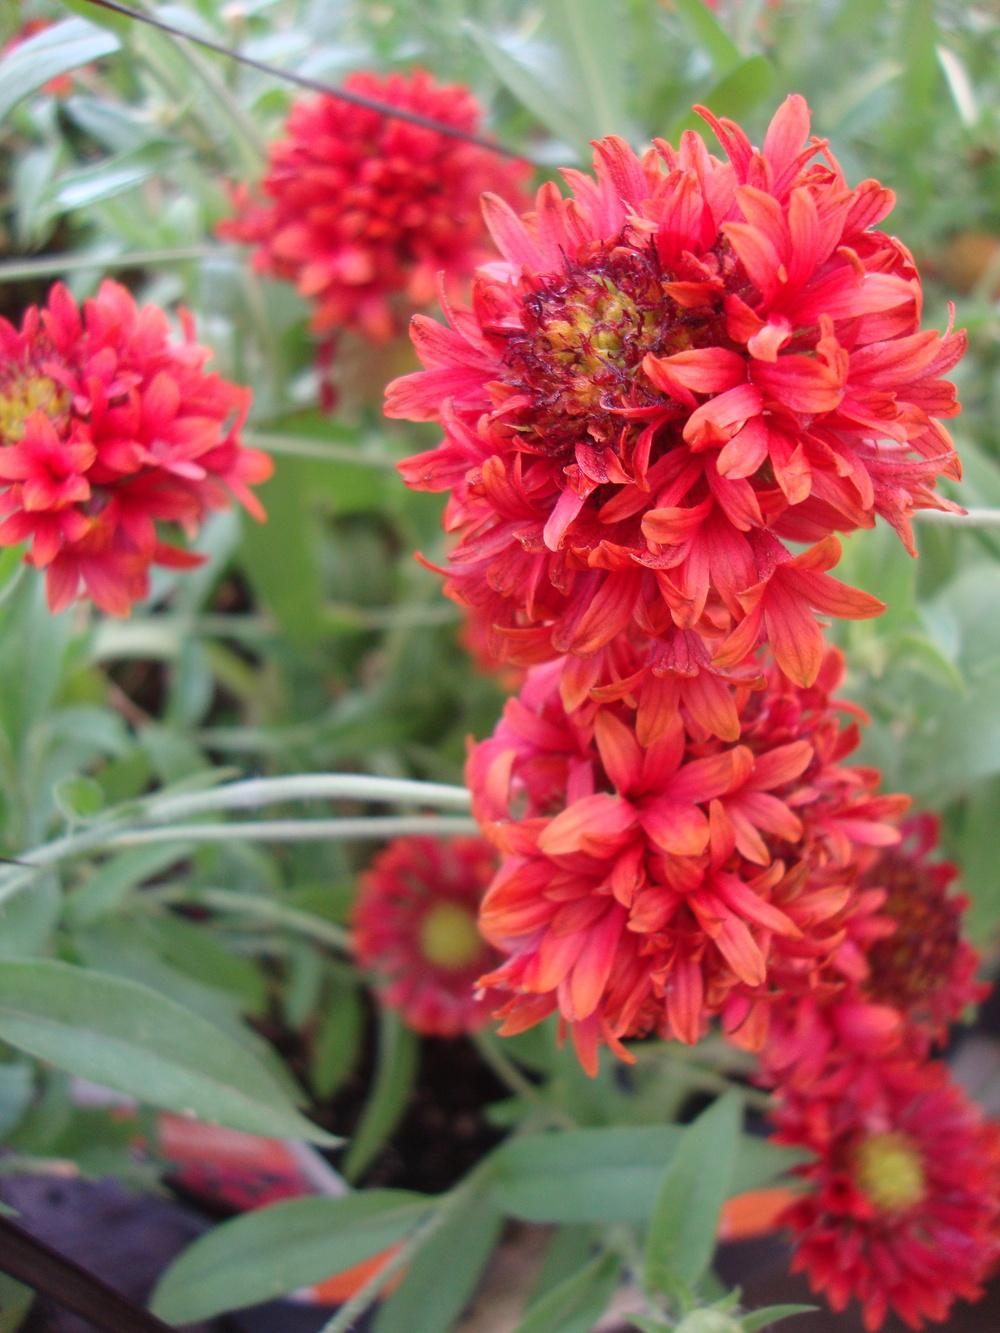 Photo of Blanket Flower (Gaillardia 'Galya Red Spark') uploaded by Paul2032